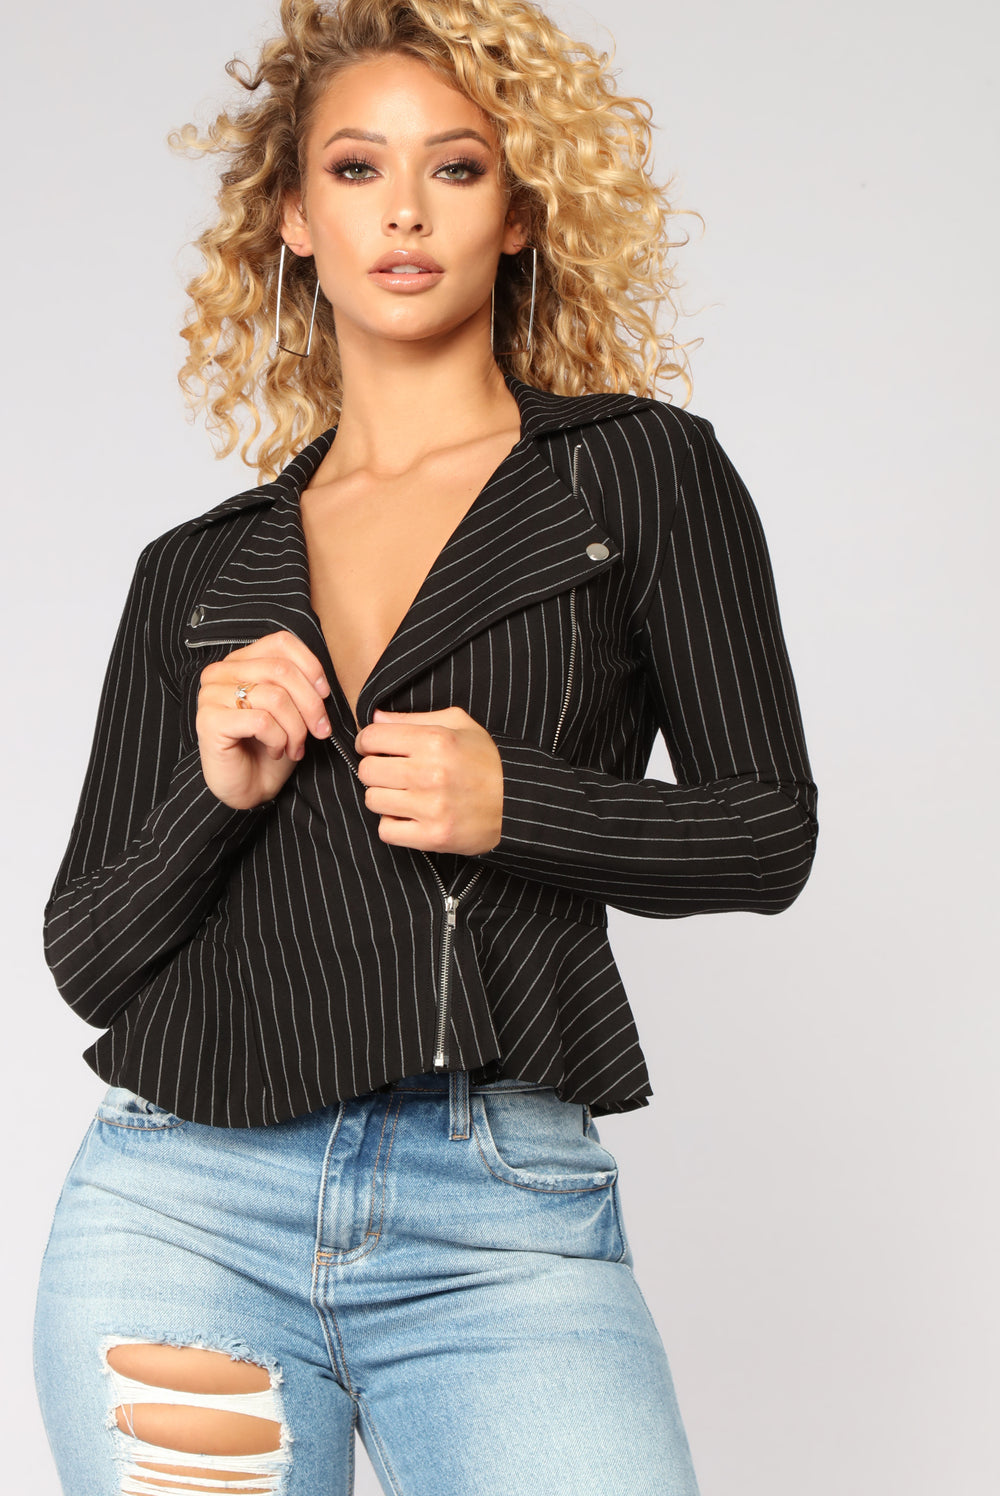 Spiked With Style Jacket - Black